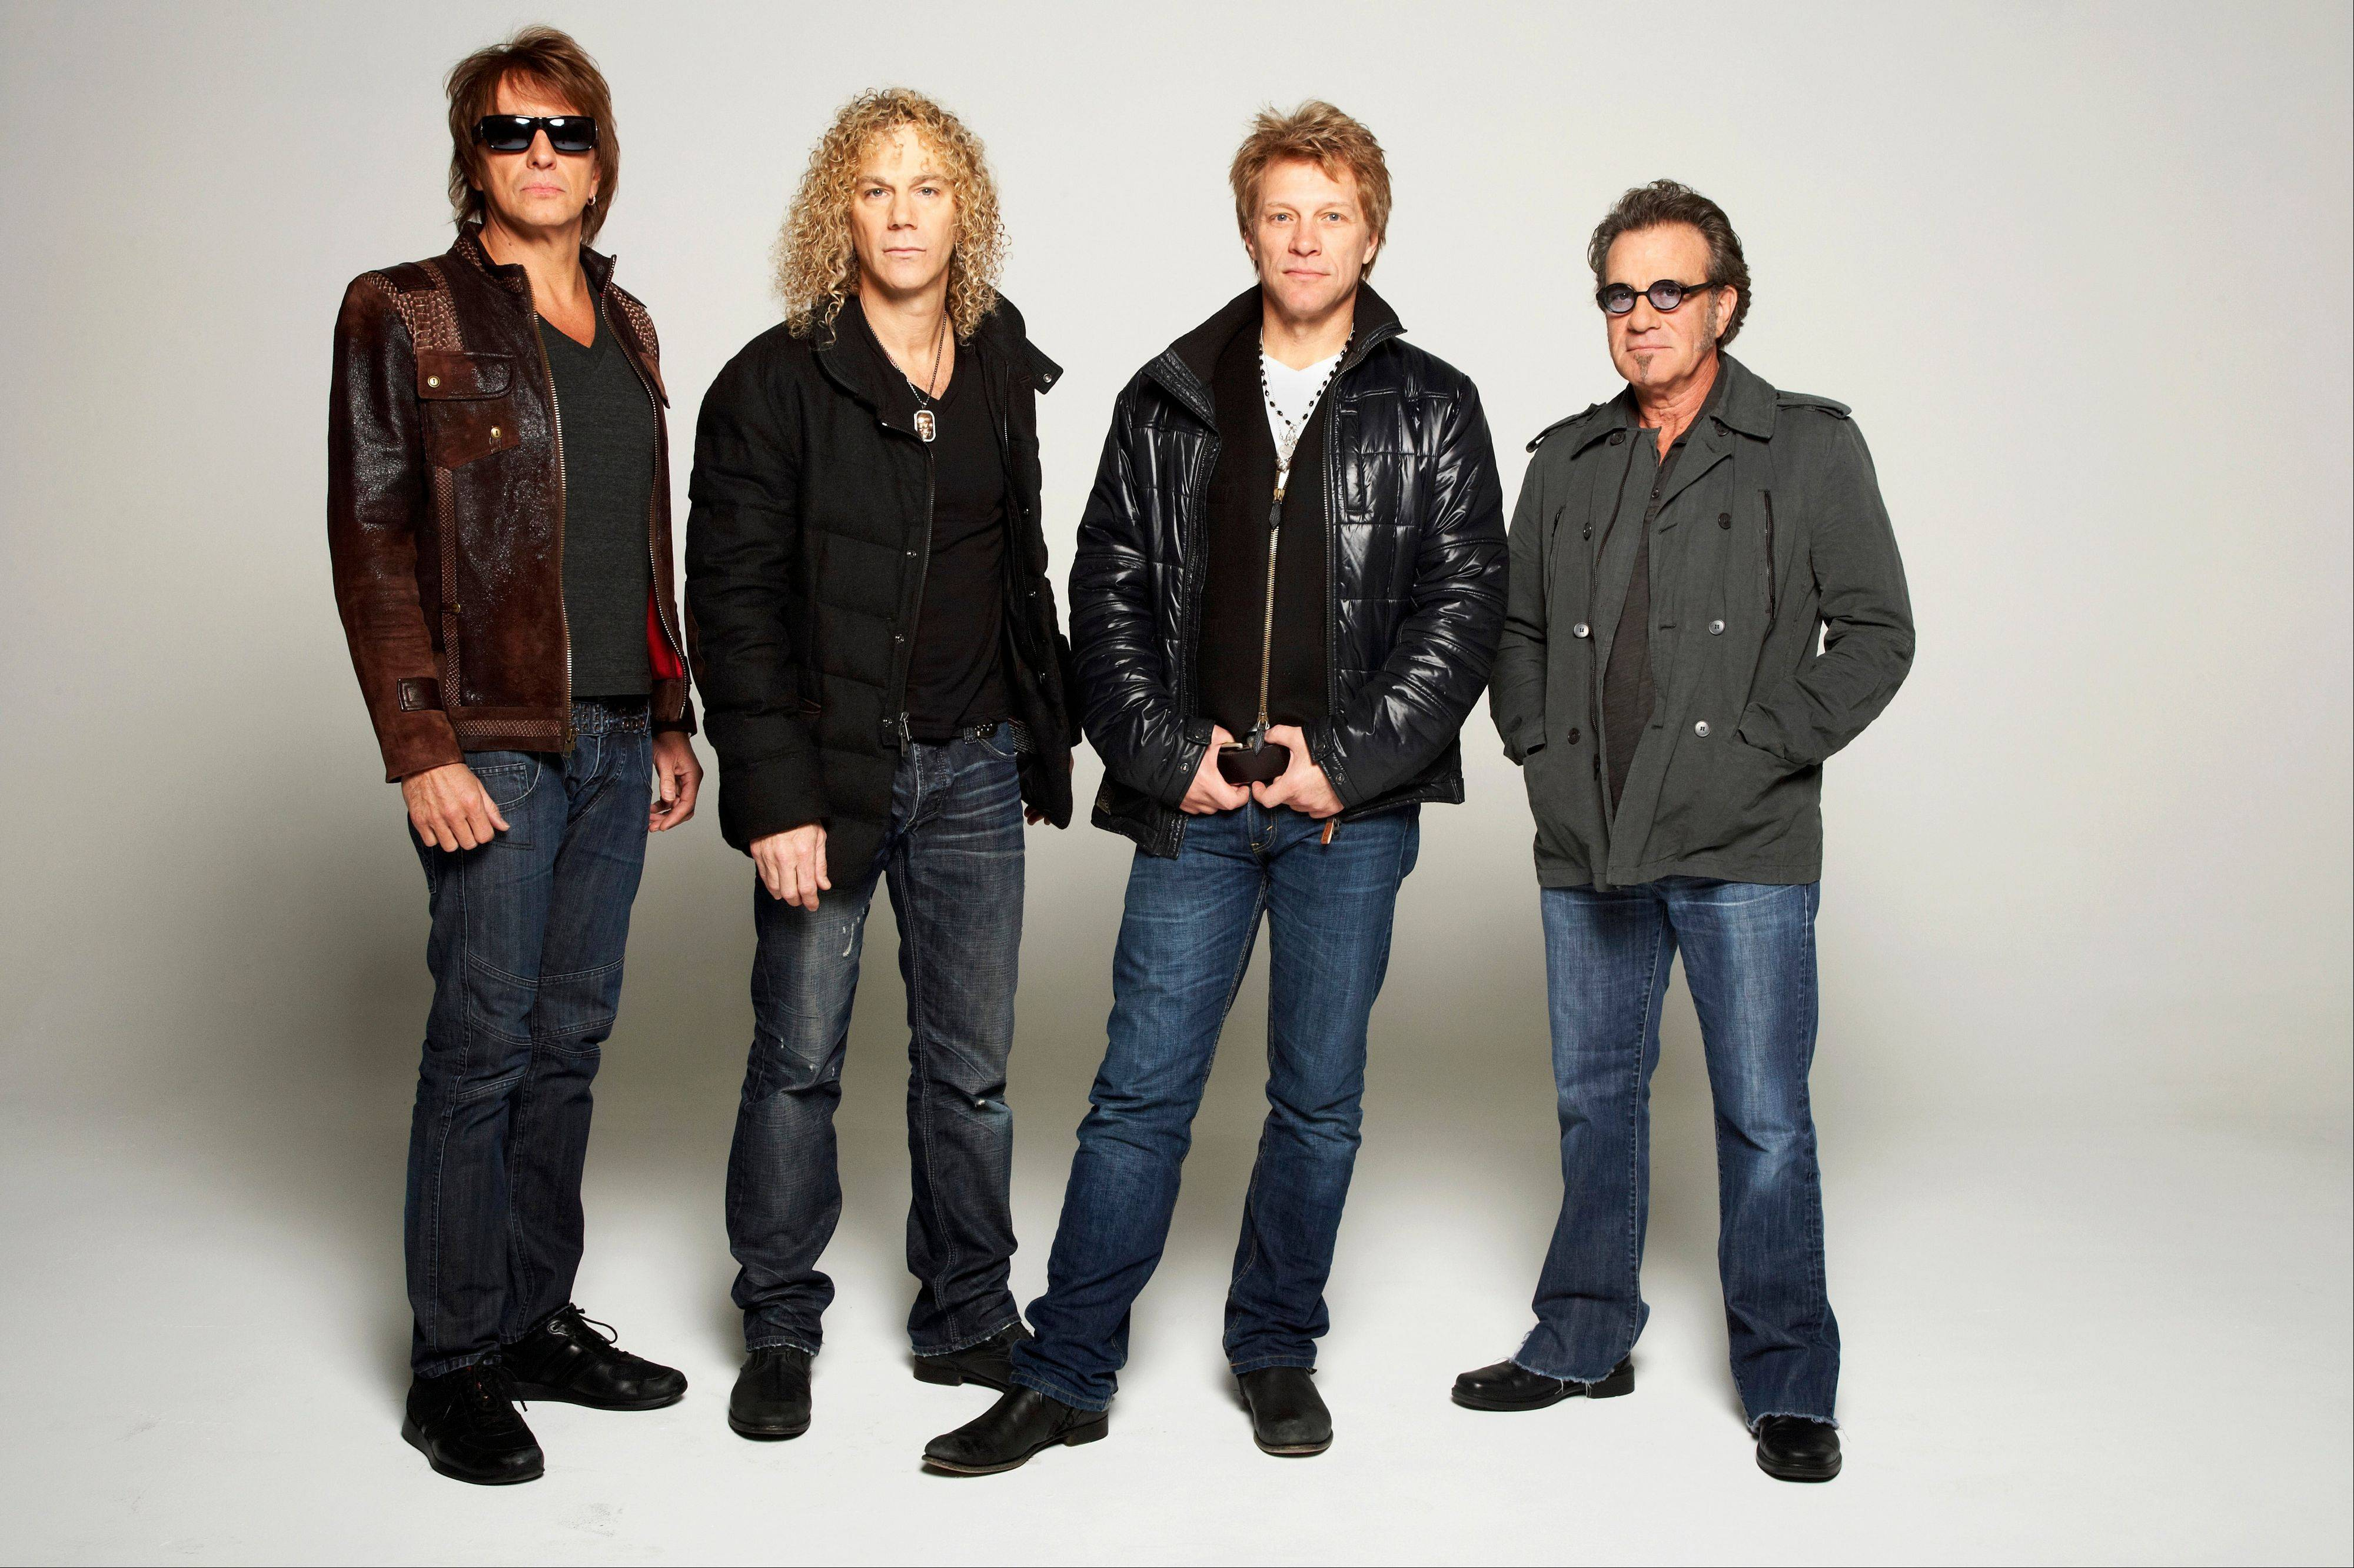 Bon Jovi � Richie Sambora, left, David Bryan, Jon Bon Jovi and Tico Torres � postponed their Tuesday show in Mexico City after Torres� emergency appendectomy in Mexico City.